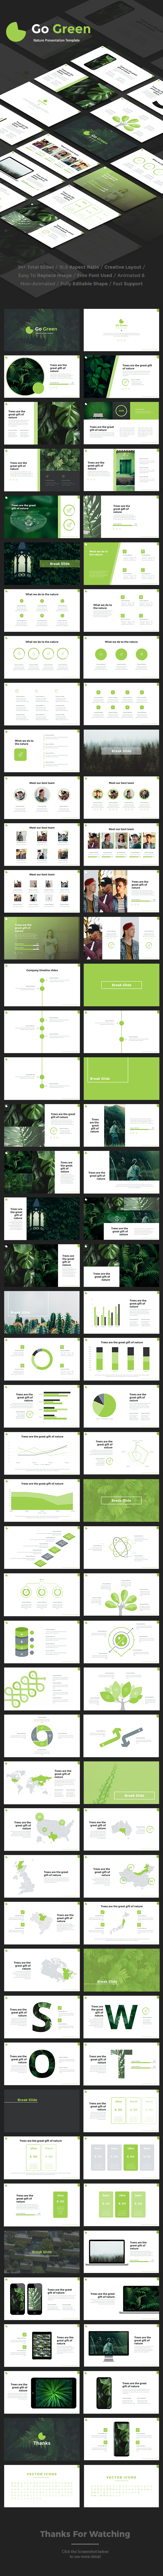 Go Green Powerpoint - Nature PowerPoint Templates